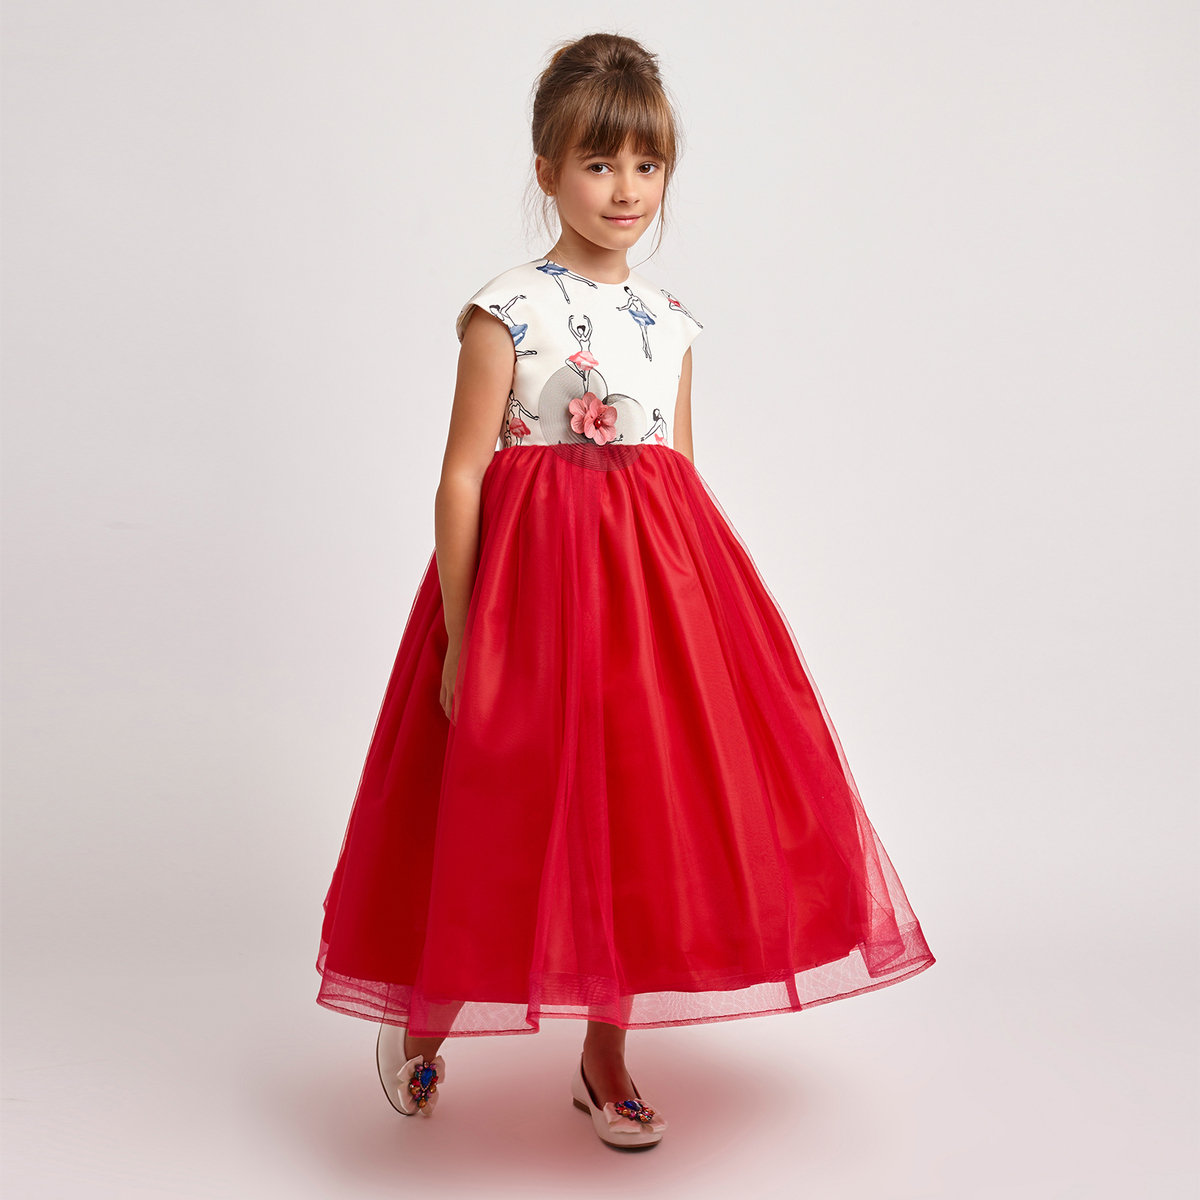 Ballerina Print & Red Tulle Empire Dress | Graci Sale | Angelibebe